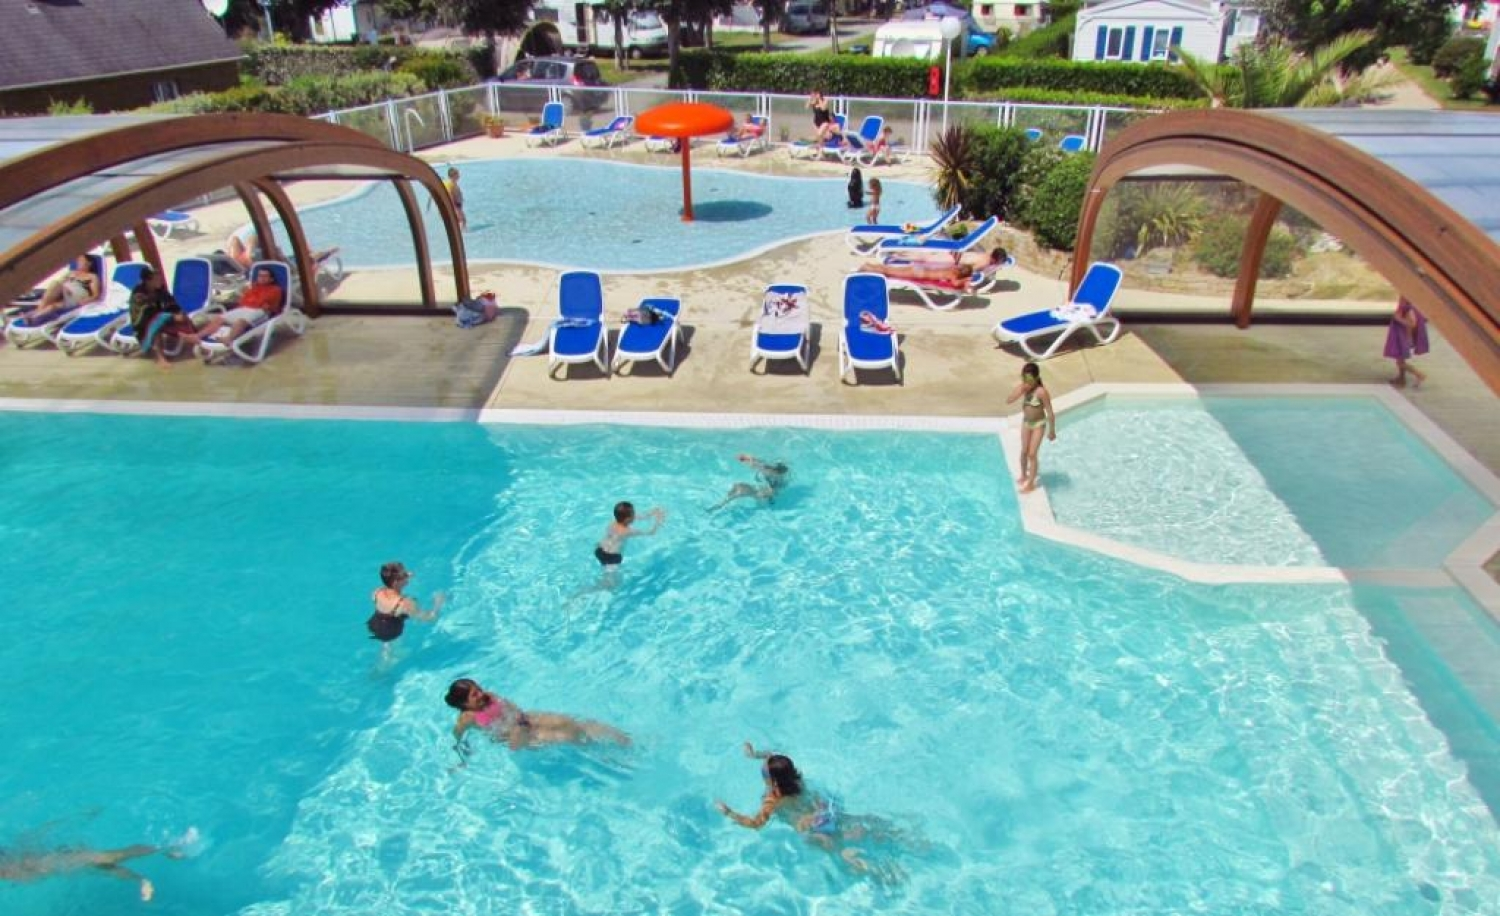 Camping guilvinec avec piscine camping bretagne sud for Camping normandie piscine couverte bord mer